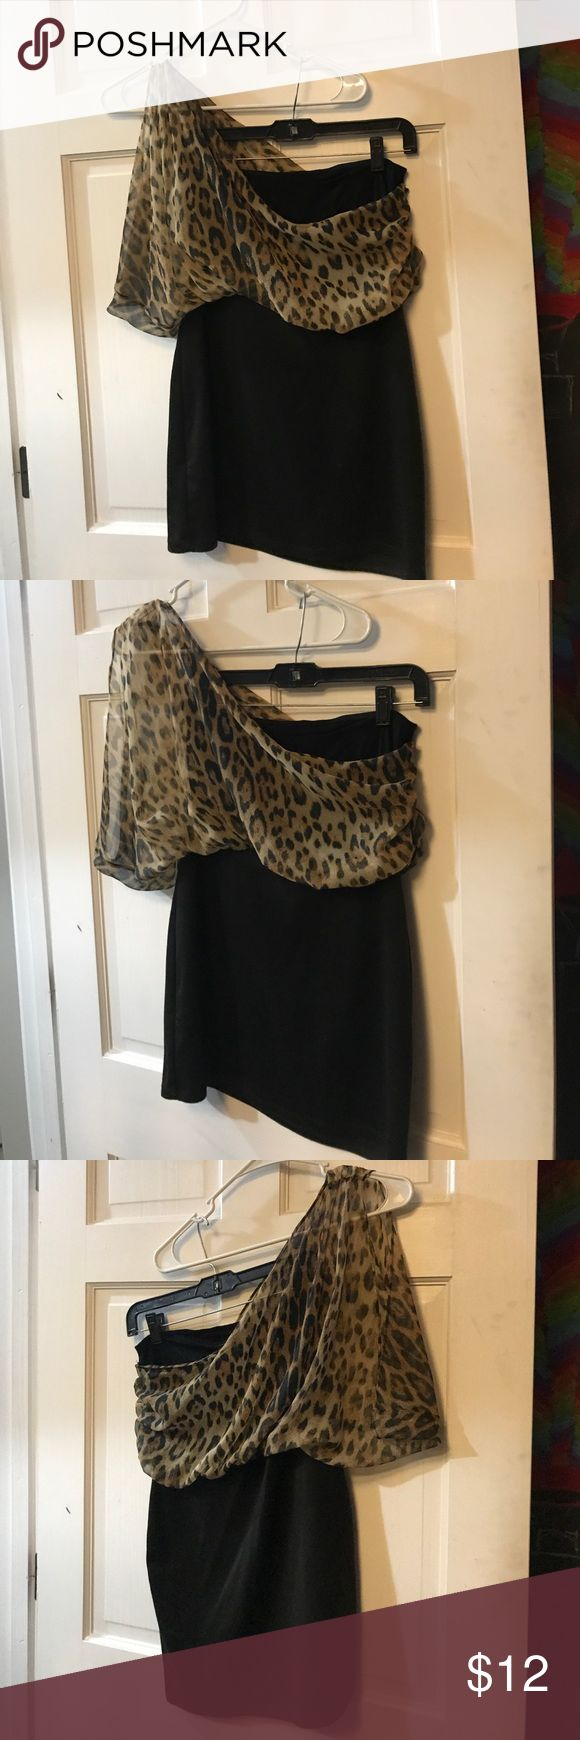 One shoulder cheetah print shirt Toska• one shoulder tube top shirt• fun dress shirt for a night out• does have some fraying where the seams are but it's not ripped(pictured)• loved but still in good condition• Toska Tops Blouses